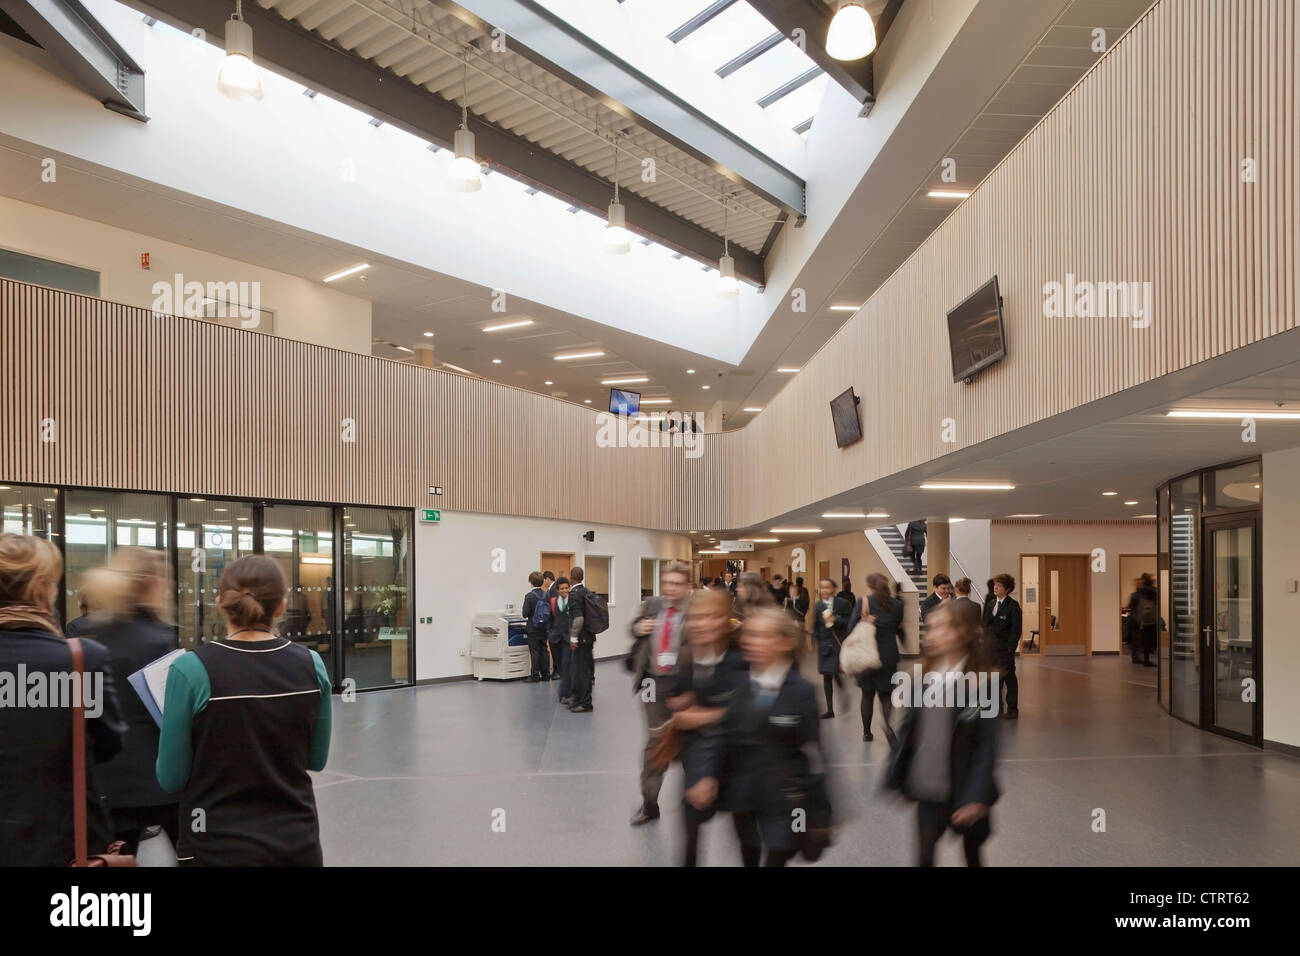 Falmer Academy Is A Six Form Entry 11-18 Year Academy To Replace Falmer  High School. The New Academy Aims To Be A Comprehensive